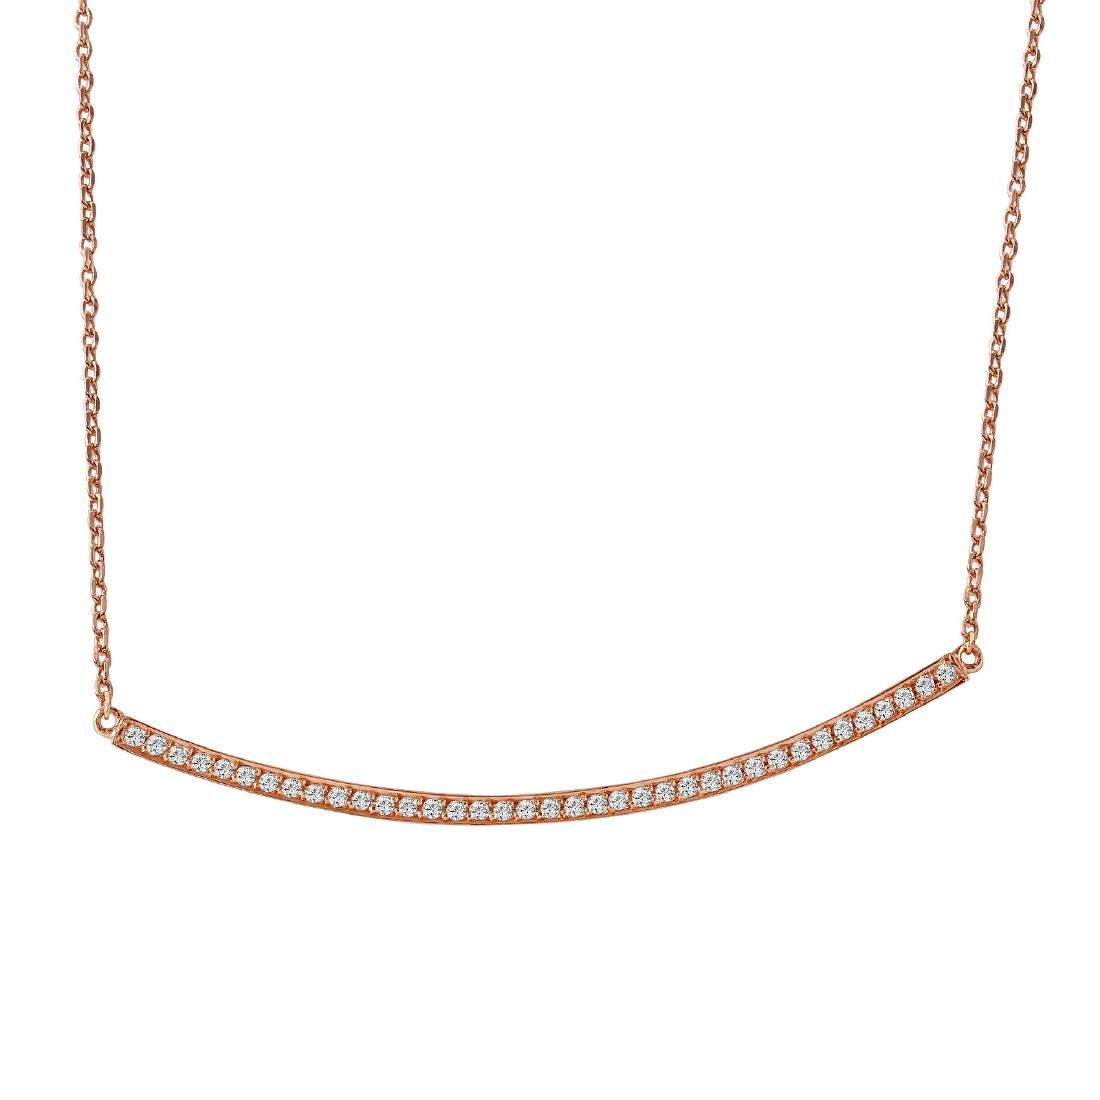 0.24 Carat Natural Diamond 18K Solid Rose Gold Necklace